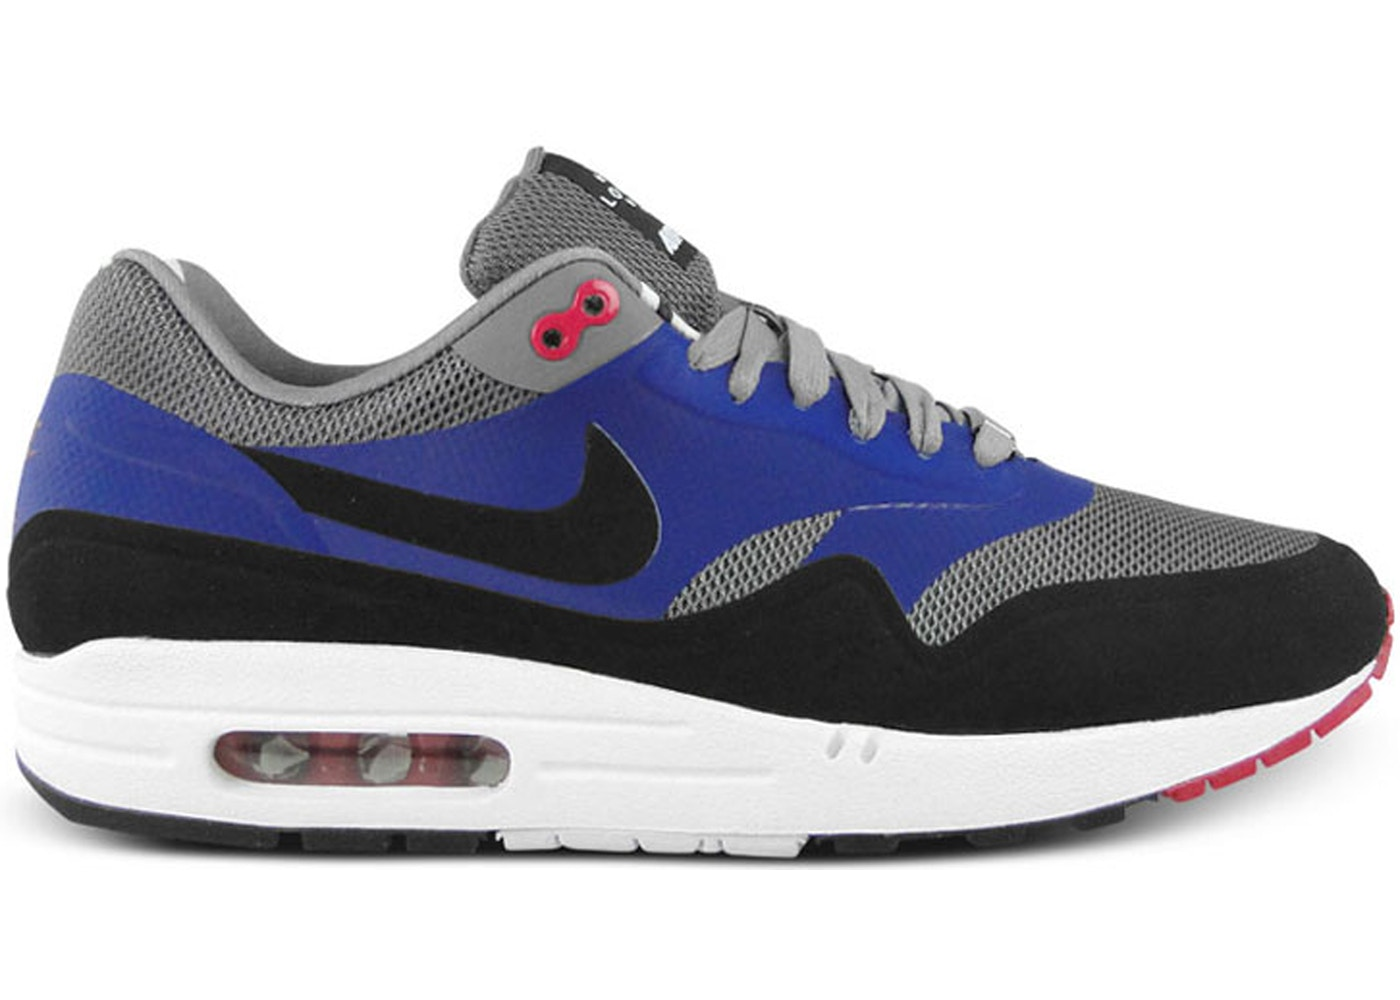 Nike Air Max 1 London Home Turf 587921 005